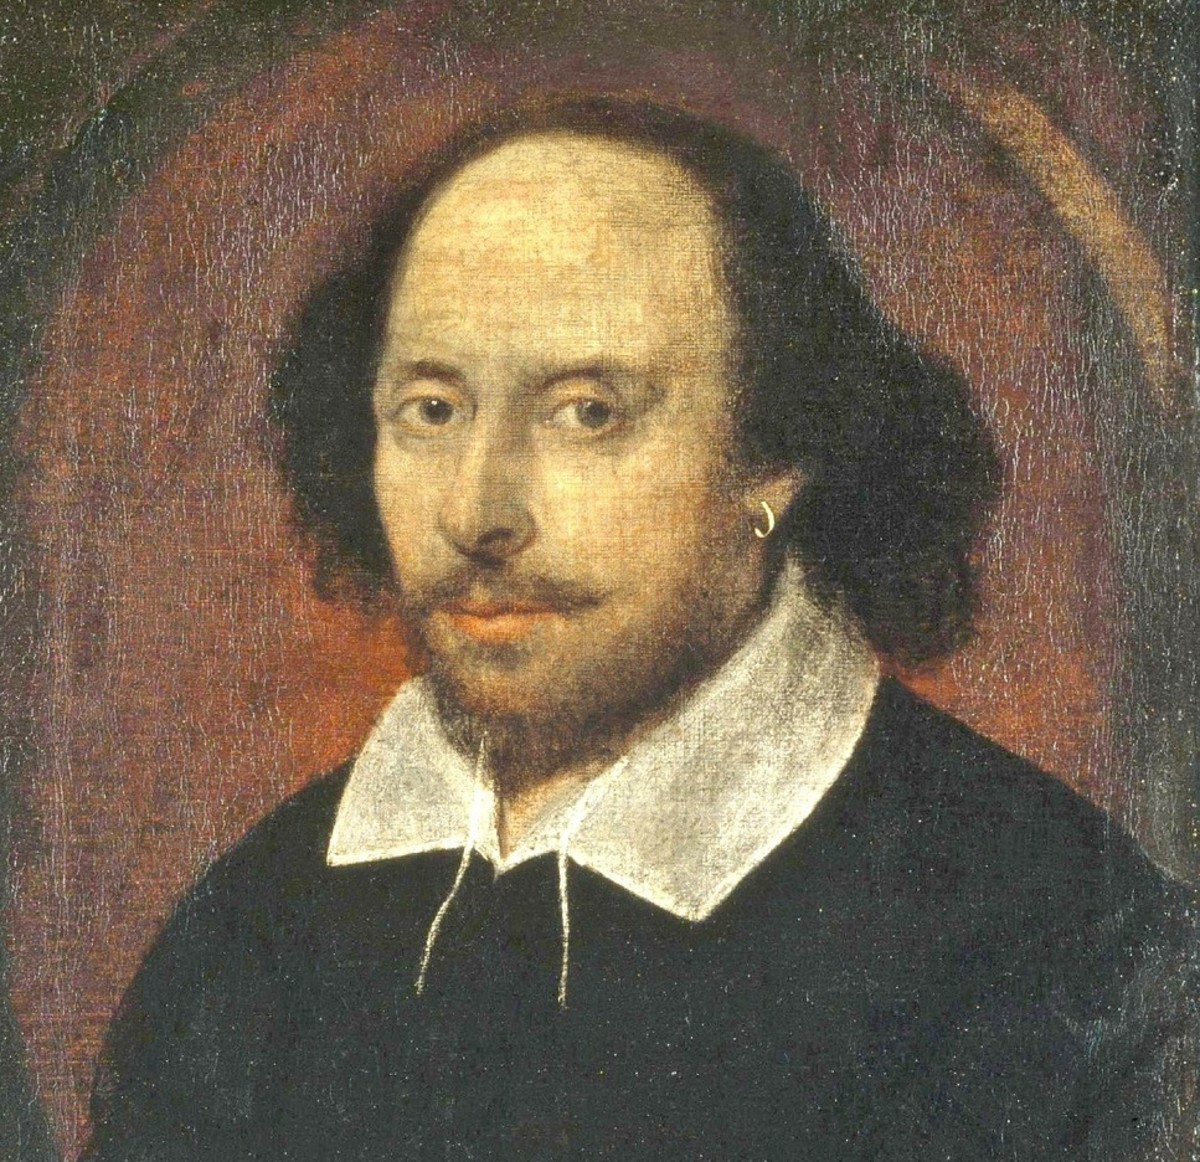 William Shakespeare invented about 10% of the words in his body of work.